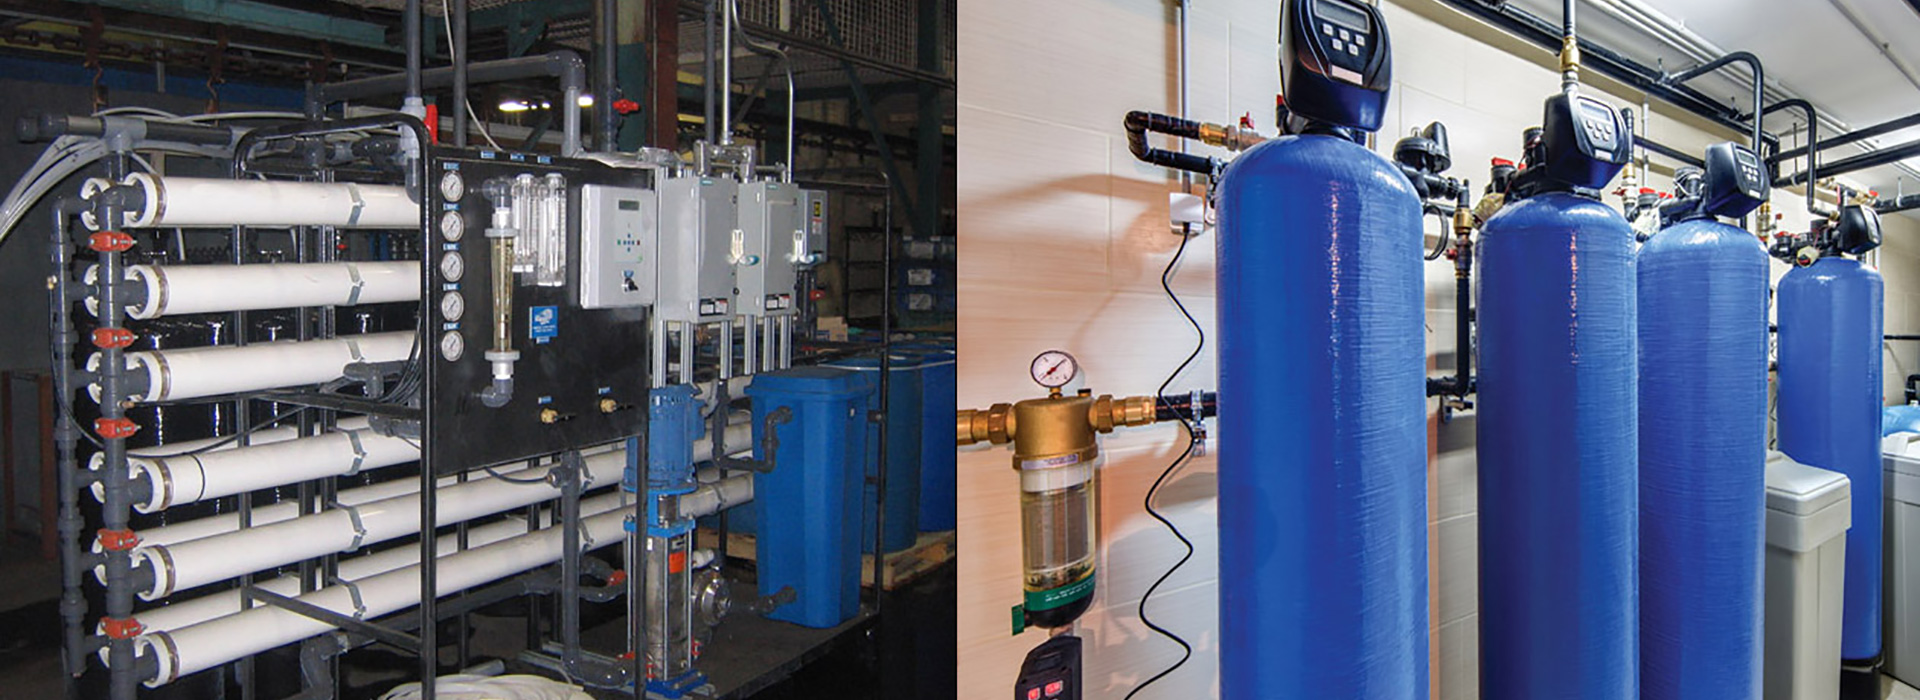 commercial / industrial water treatment